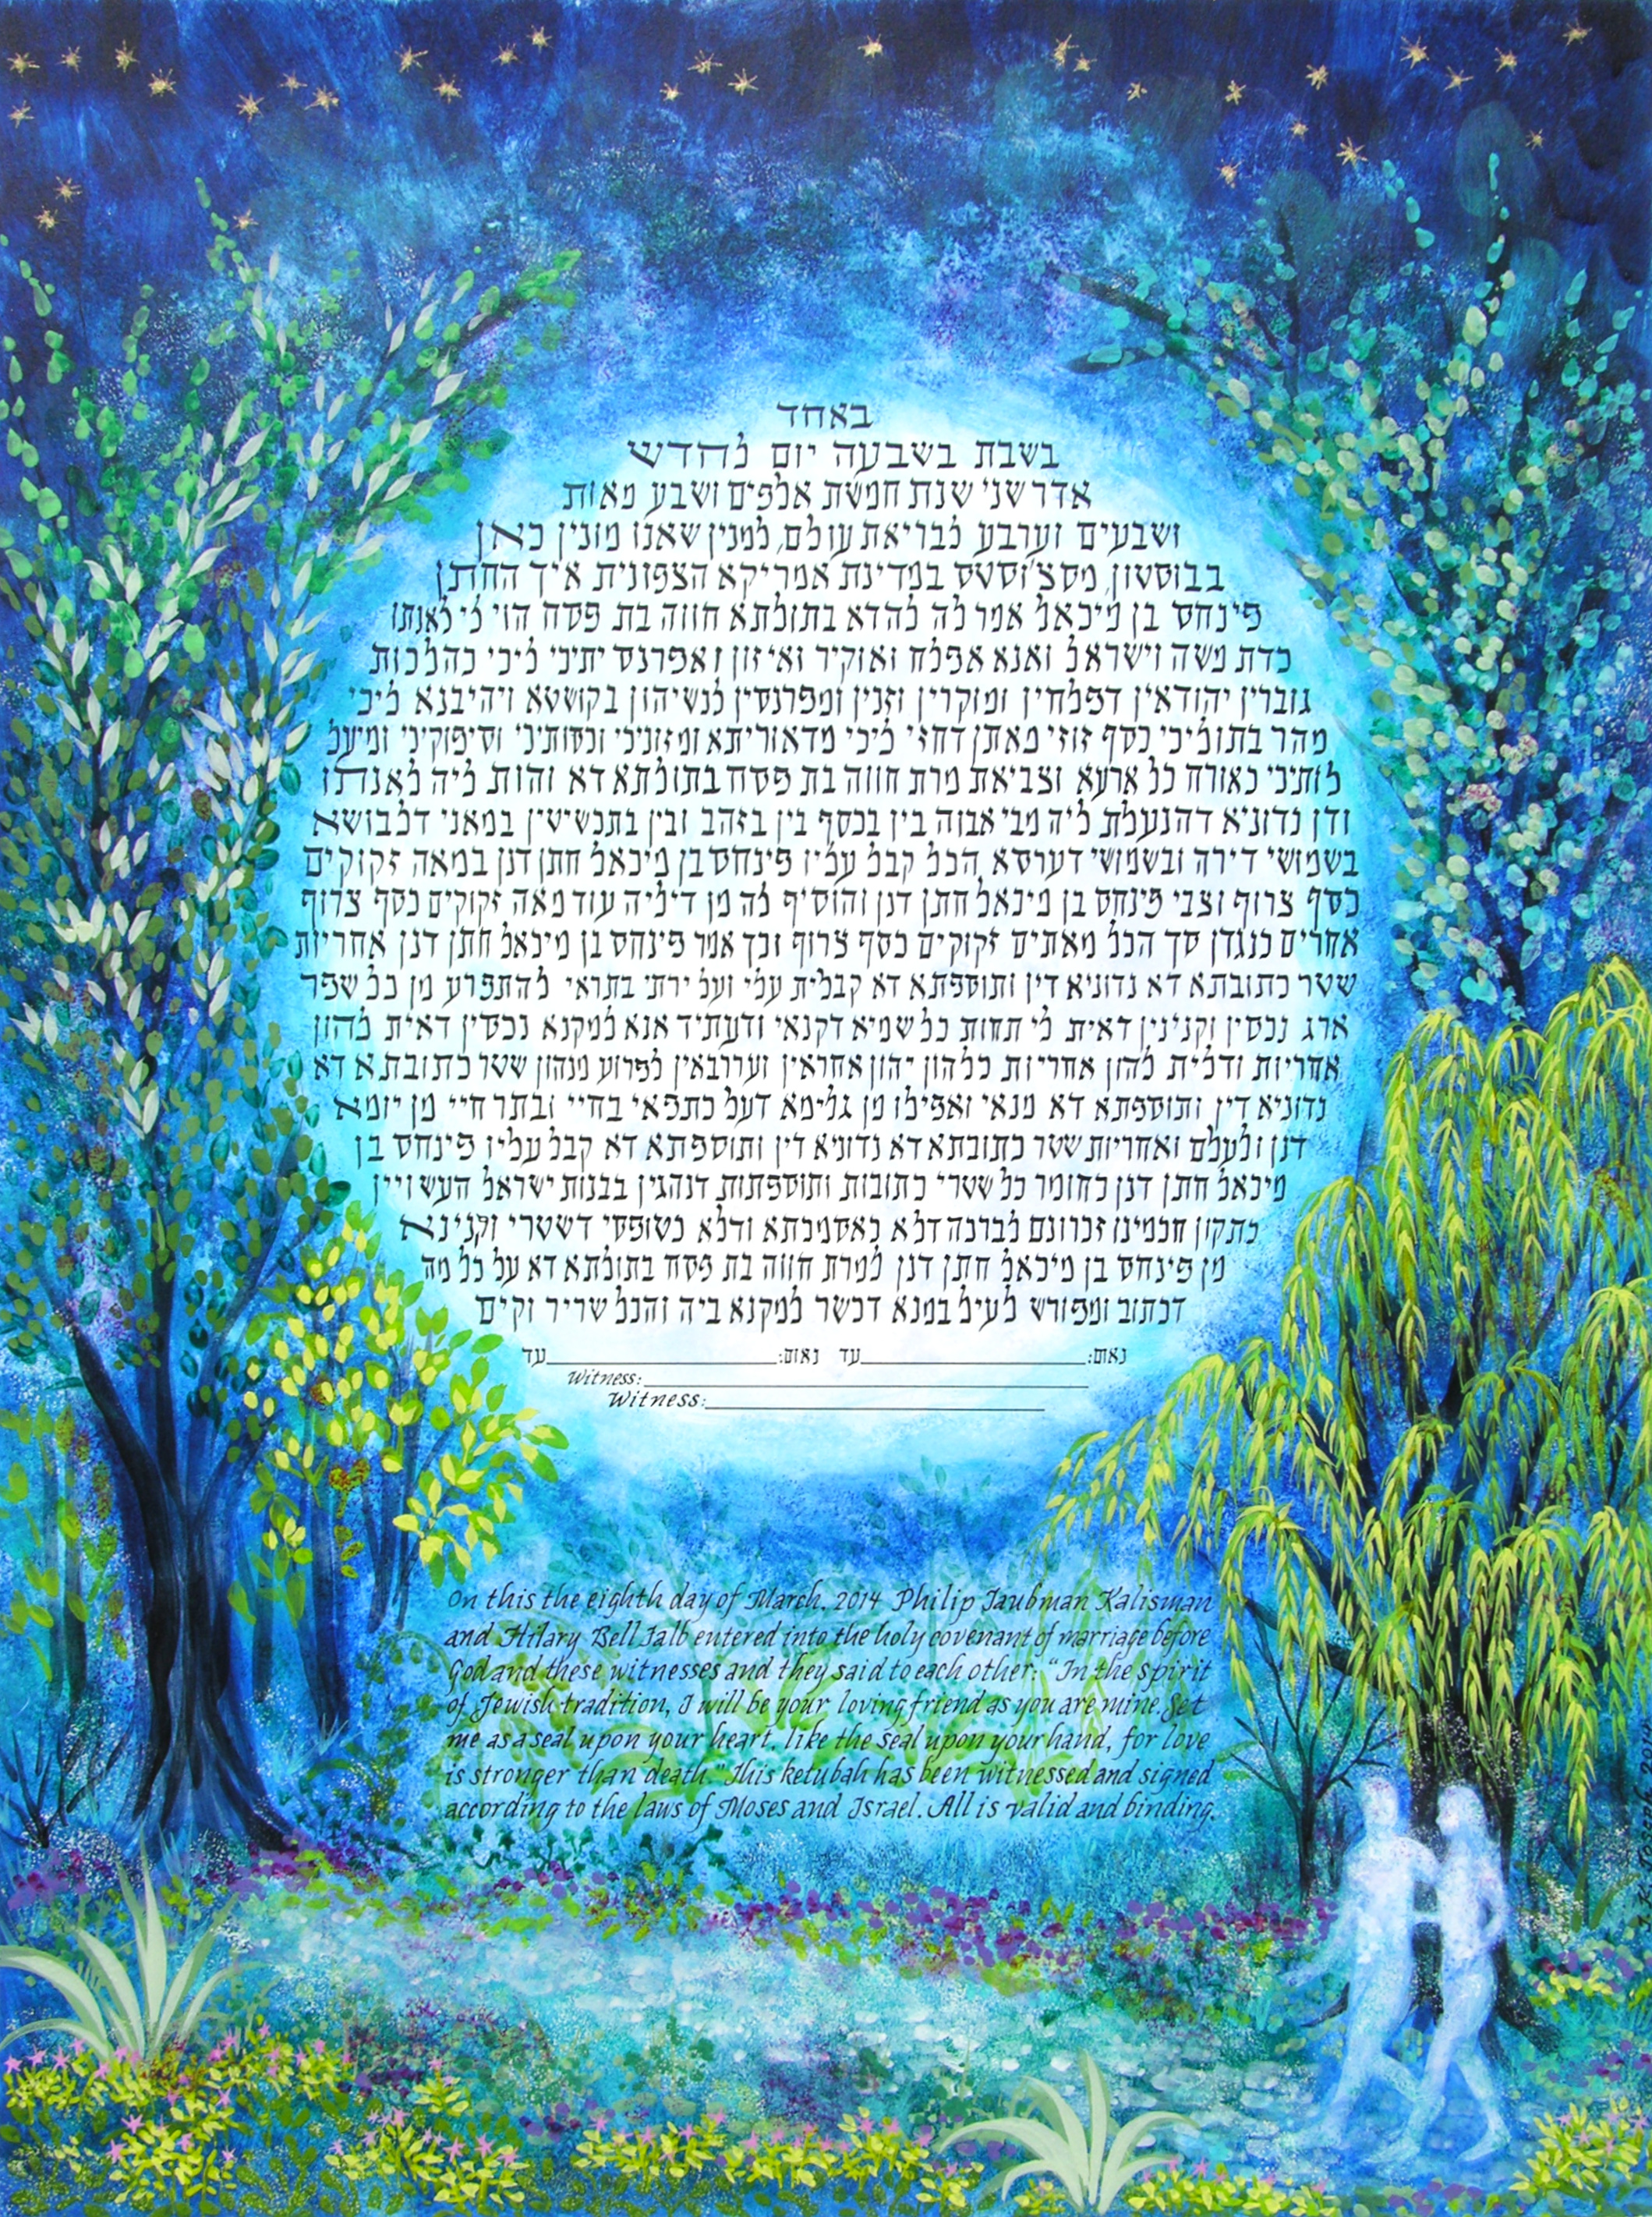 Moonlit Stroll Ketubah, Boston, Massachusetts 2014